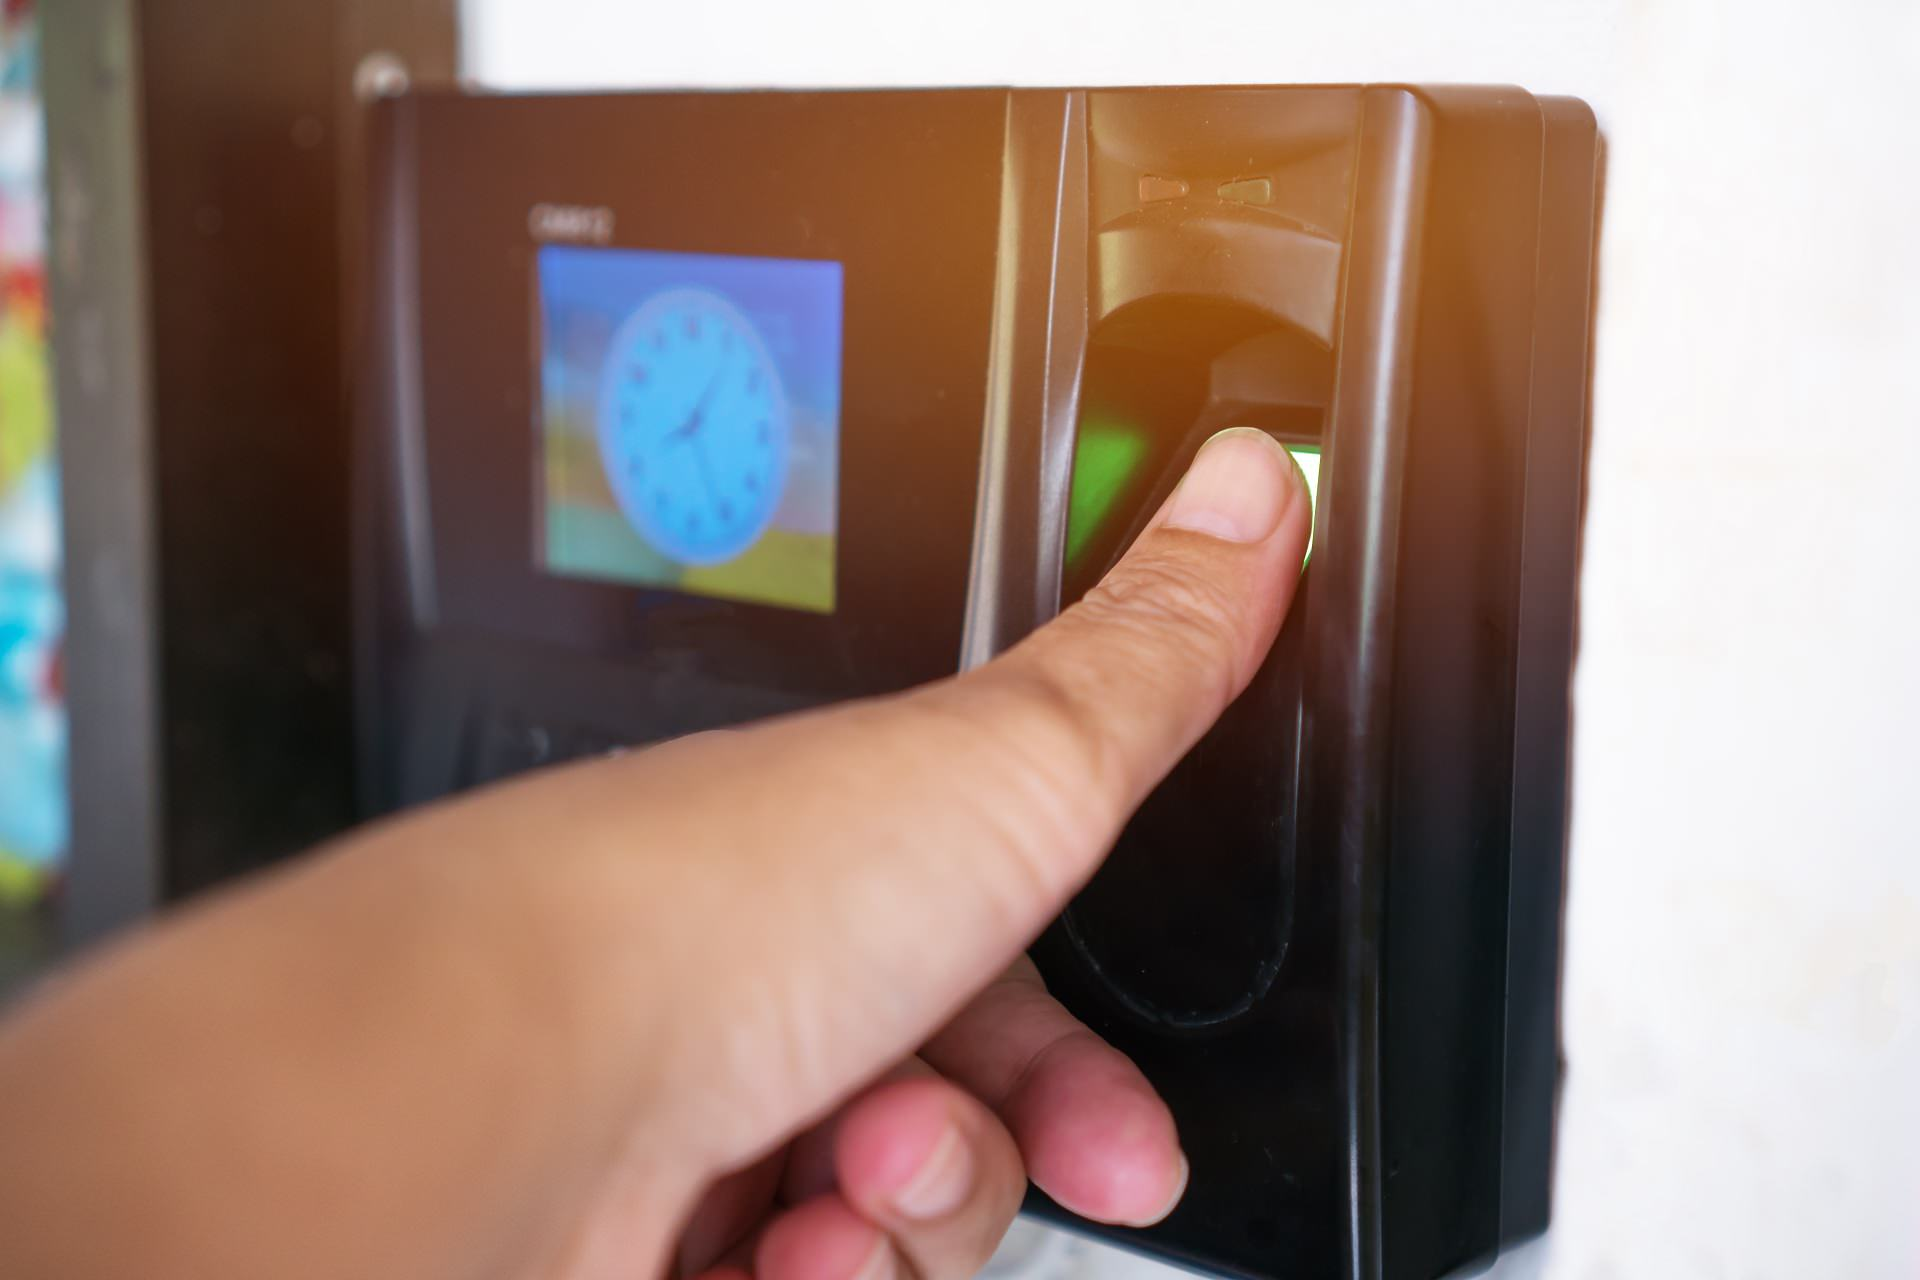 Fingerprint or Thumbprint scanner scan to record at working time